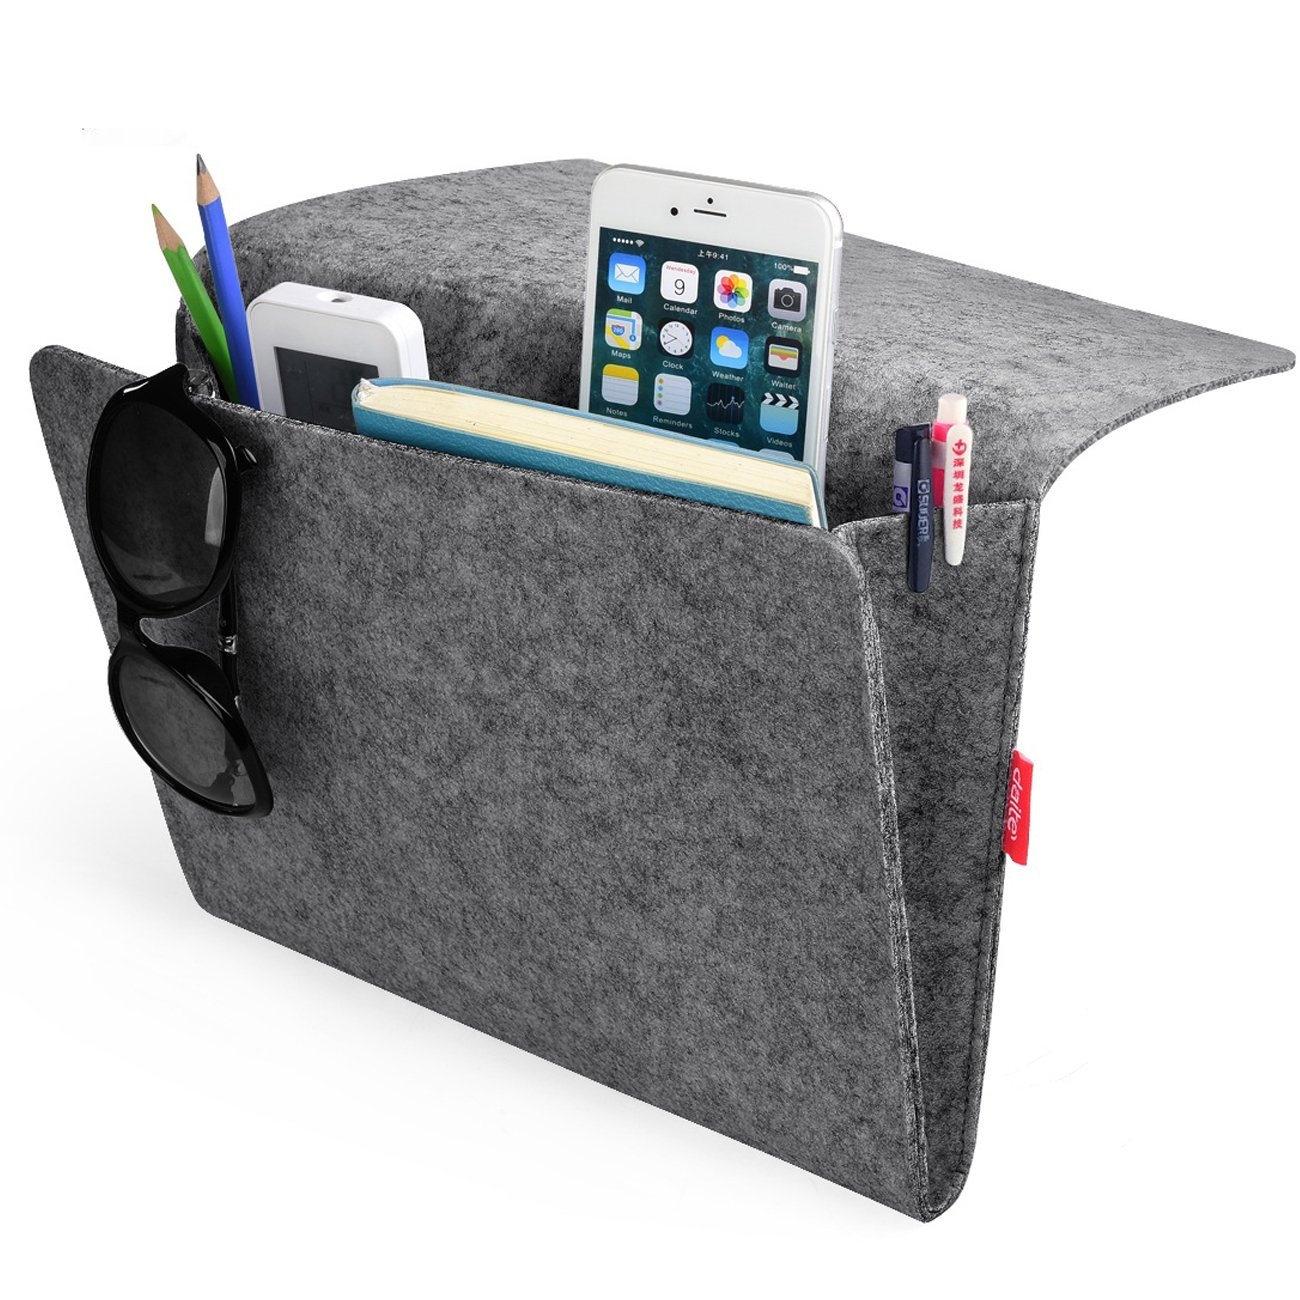 Bedside Caddy, Felt Bed Caddy Storage Organizer Bedside Pocket inside with 2 Small Pockets for organizing tablet Magazine Phone Small Things Home Sofa Desk Holder (Gray) KEHANGDA T105